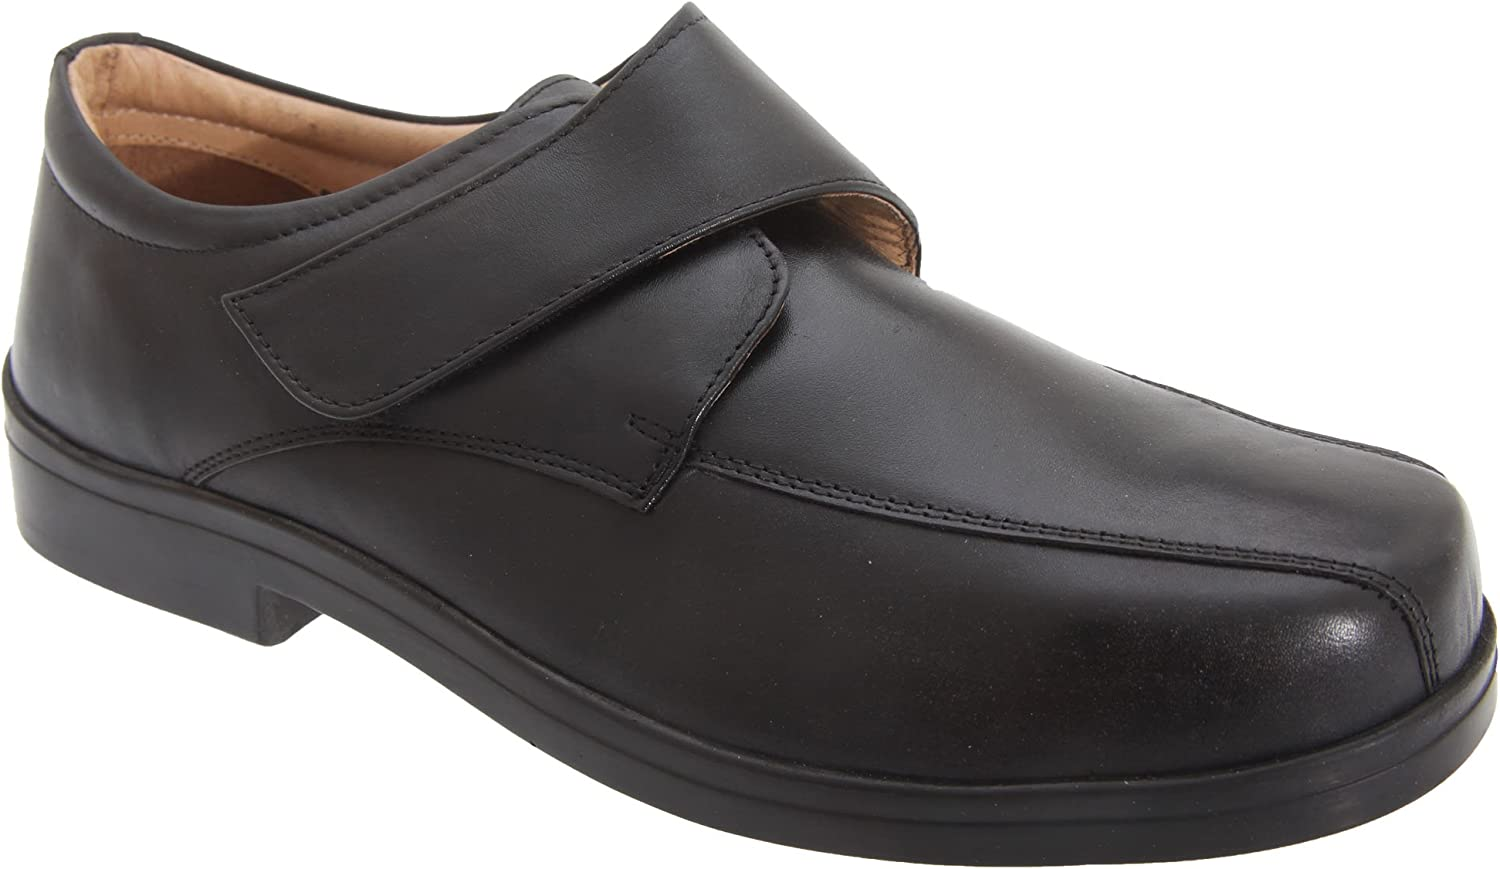 Mens Touch Fastening Shoes Mens Wide Fit Shoes Casual Shoes Comfort Shoes E Width Black//Brown